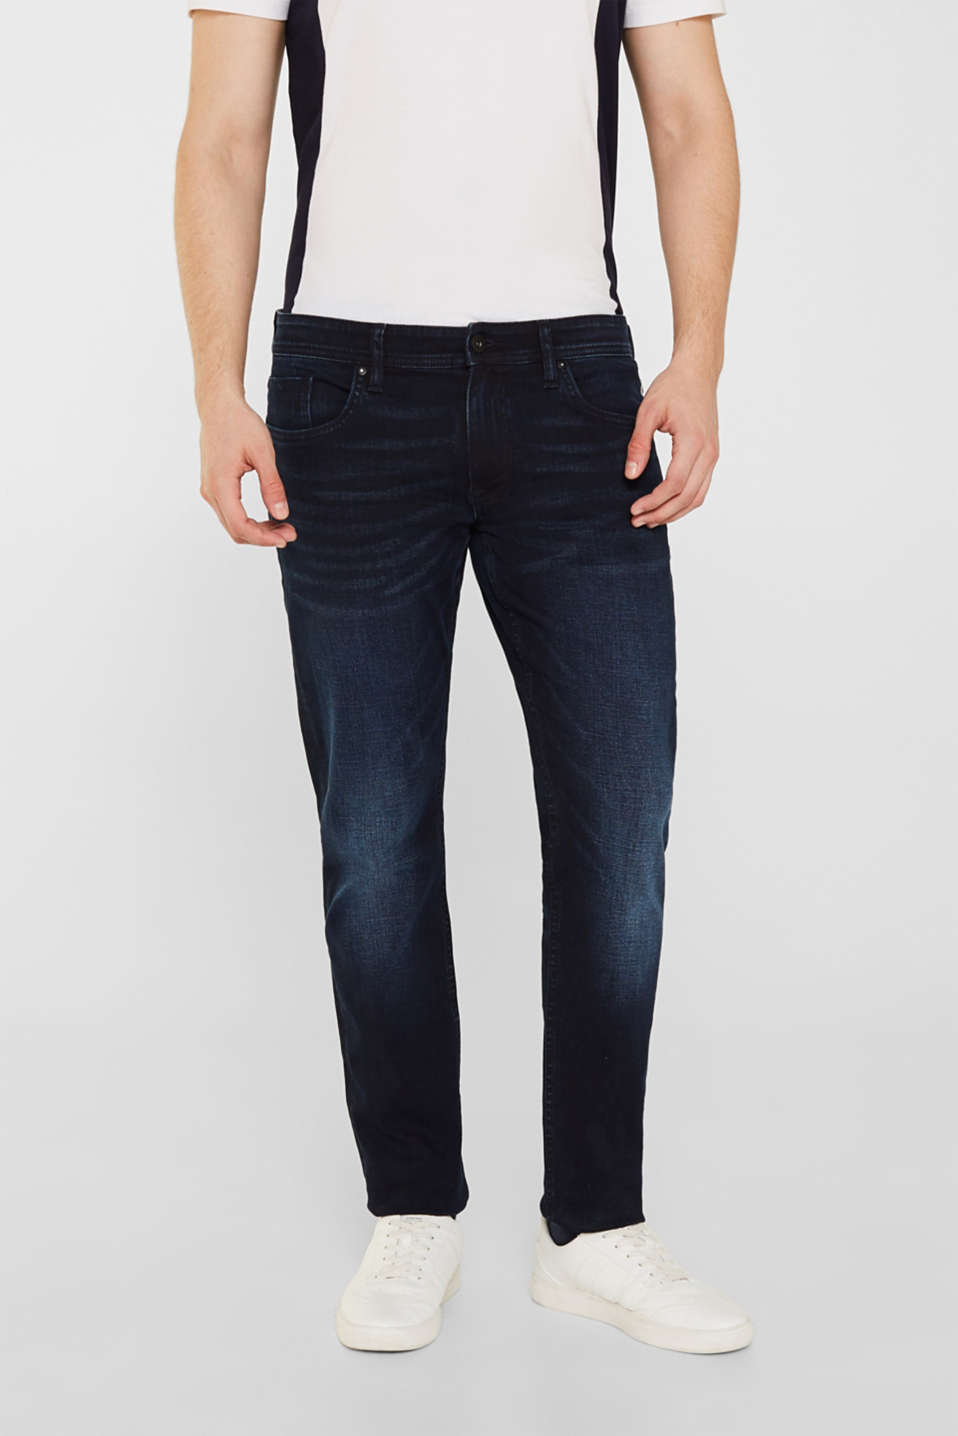 edc - Stretch jeans with a washed out finish